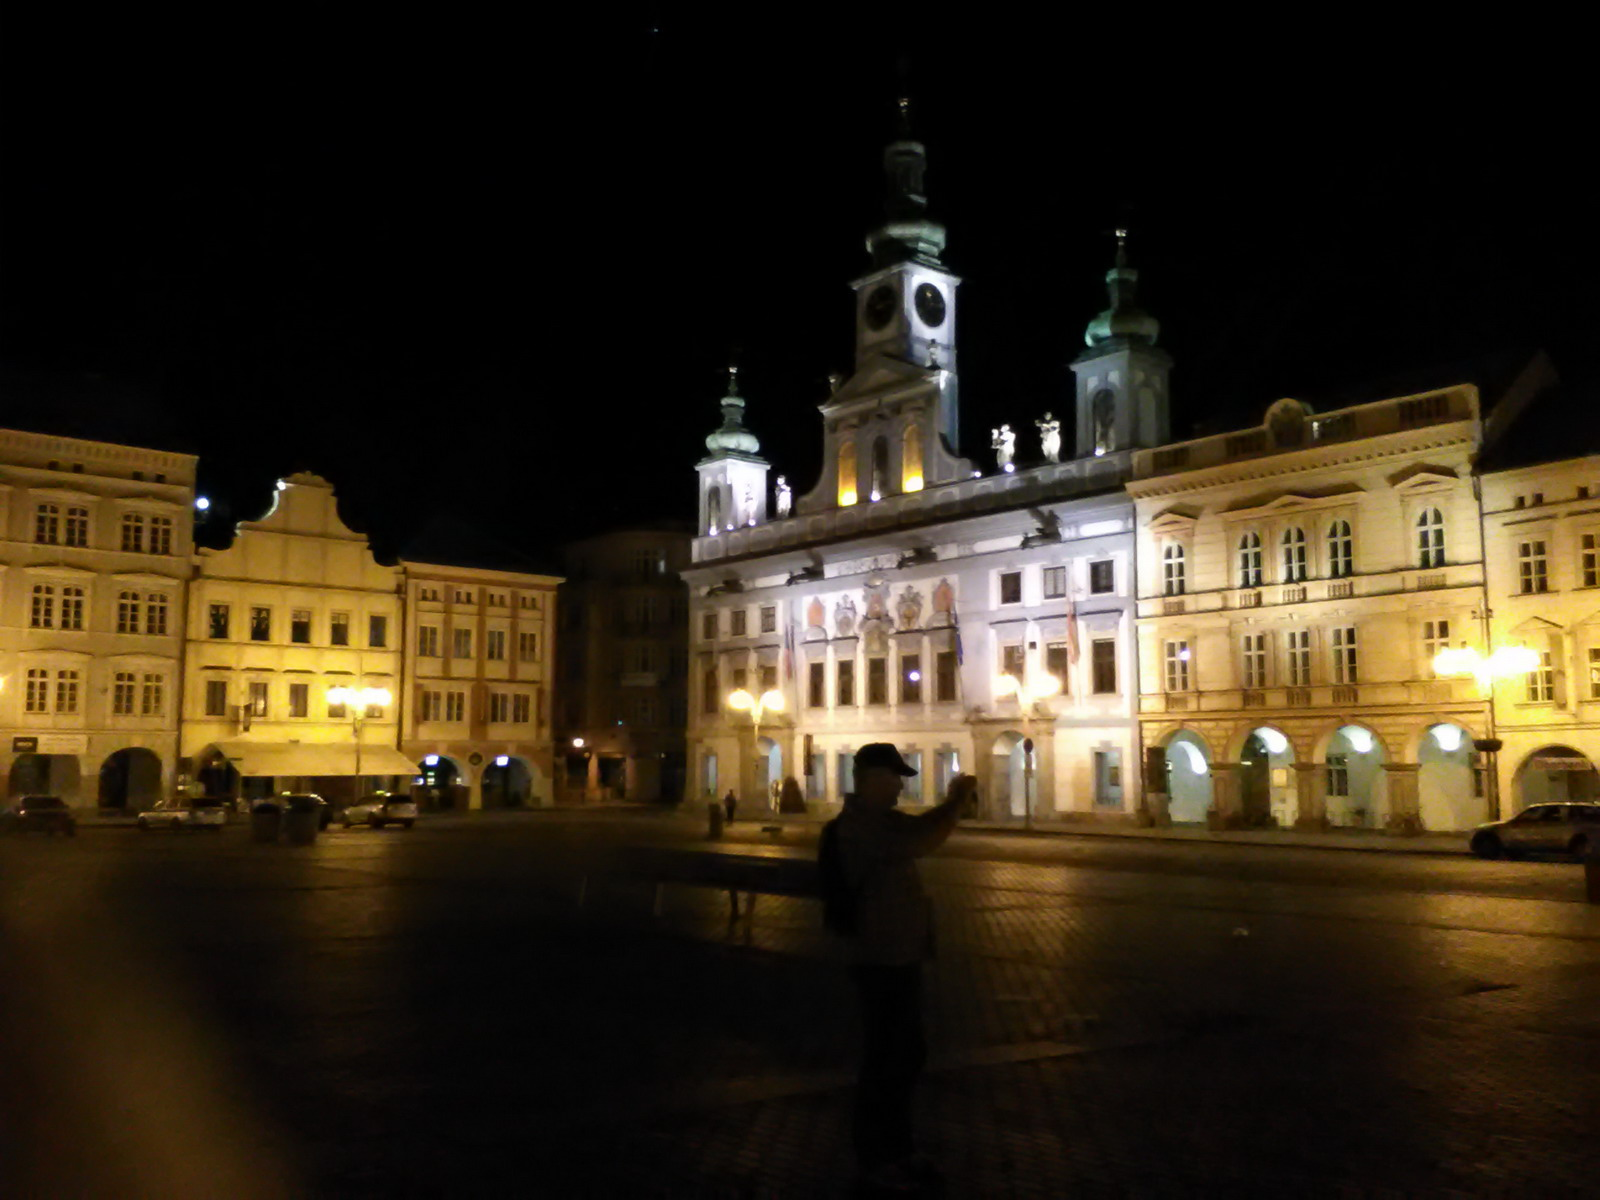 Budweis main square by night